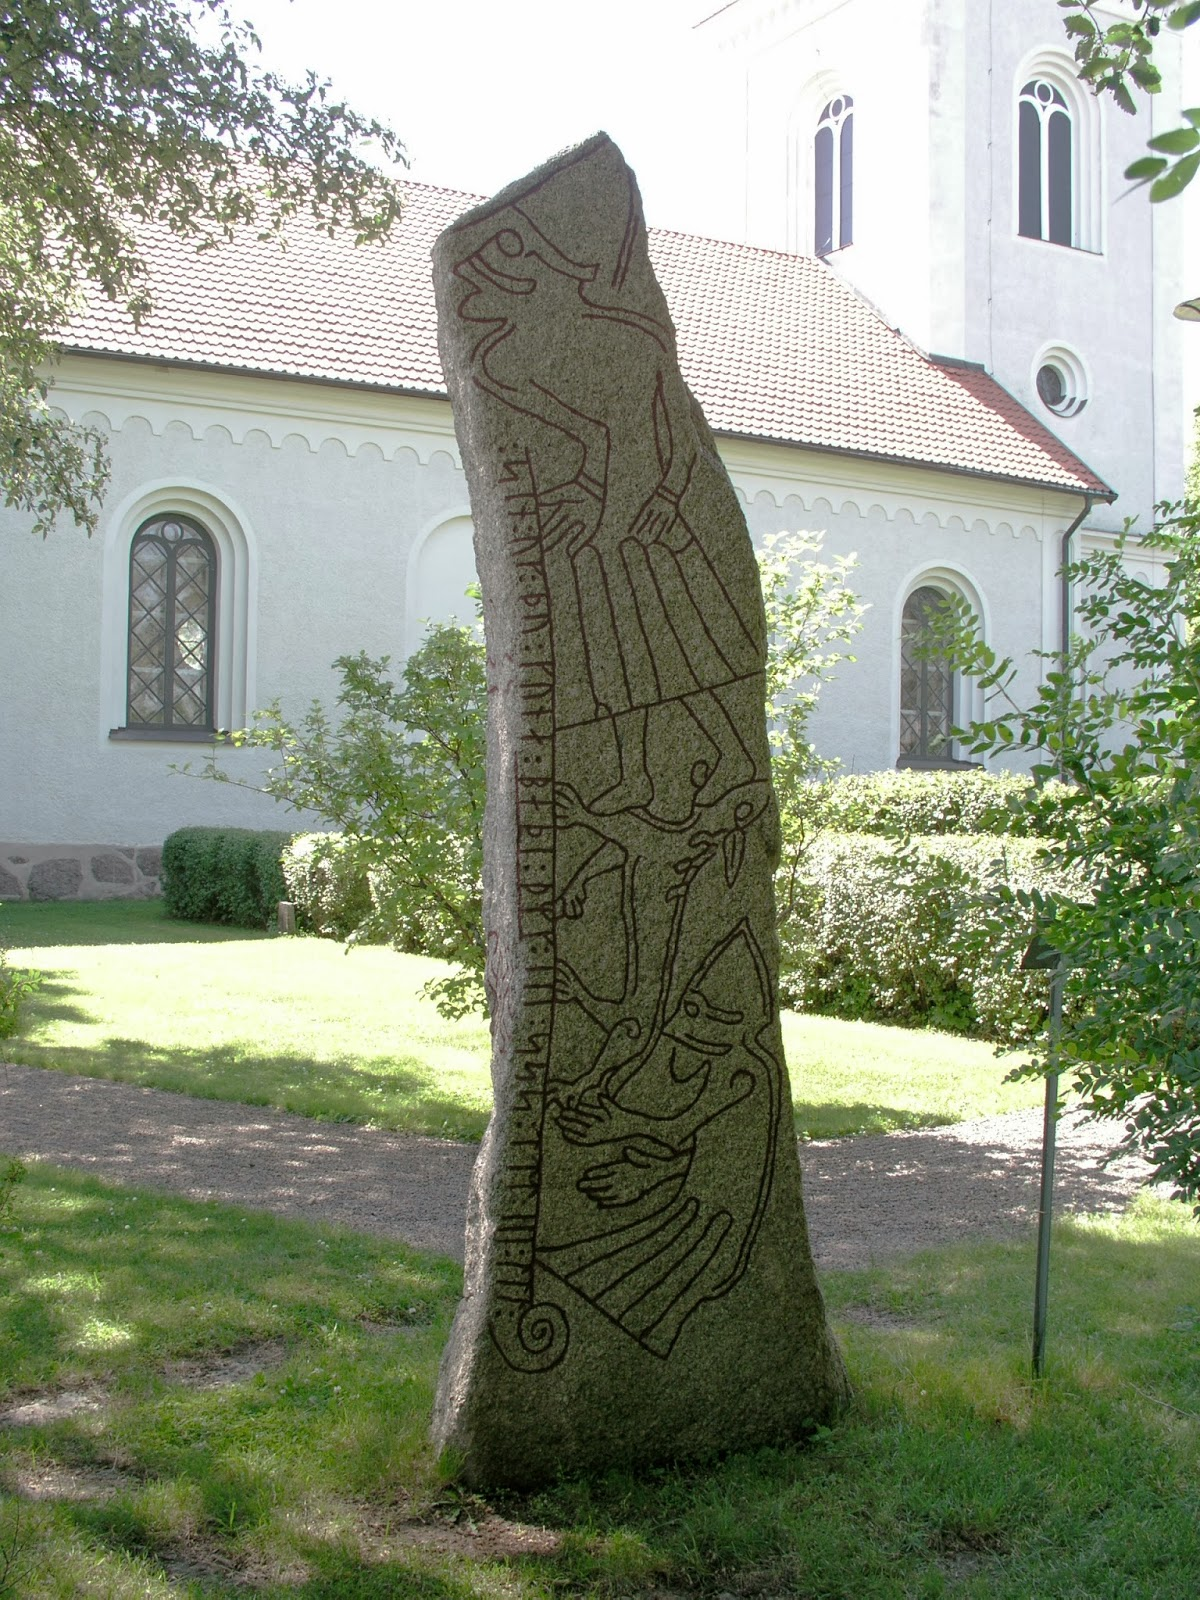 The Ledberg Stone, Sweden with a depiction of the Fenris Wolf ...